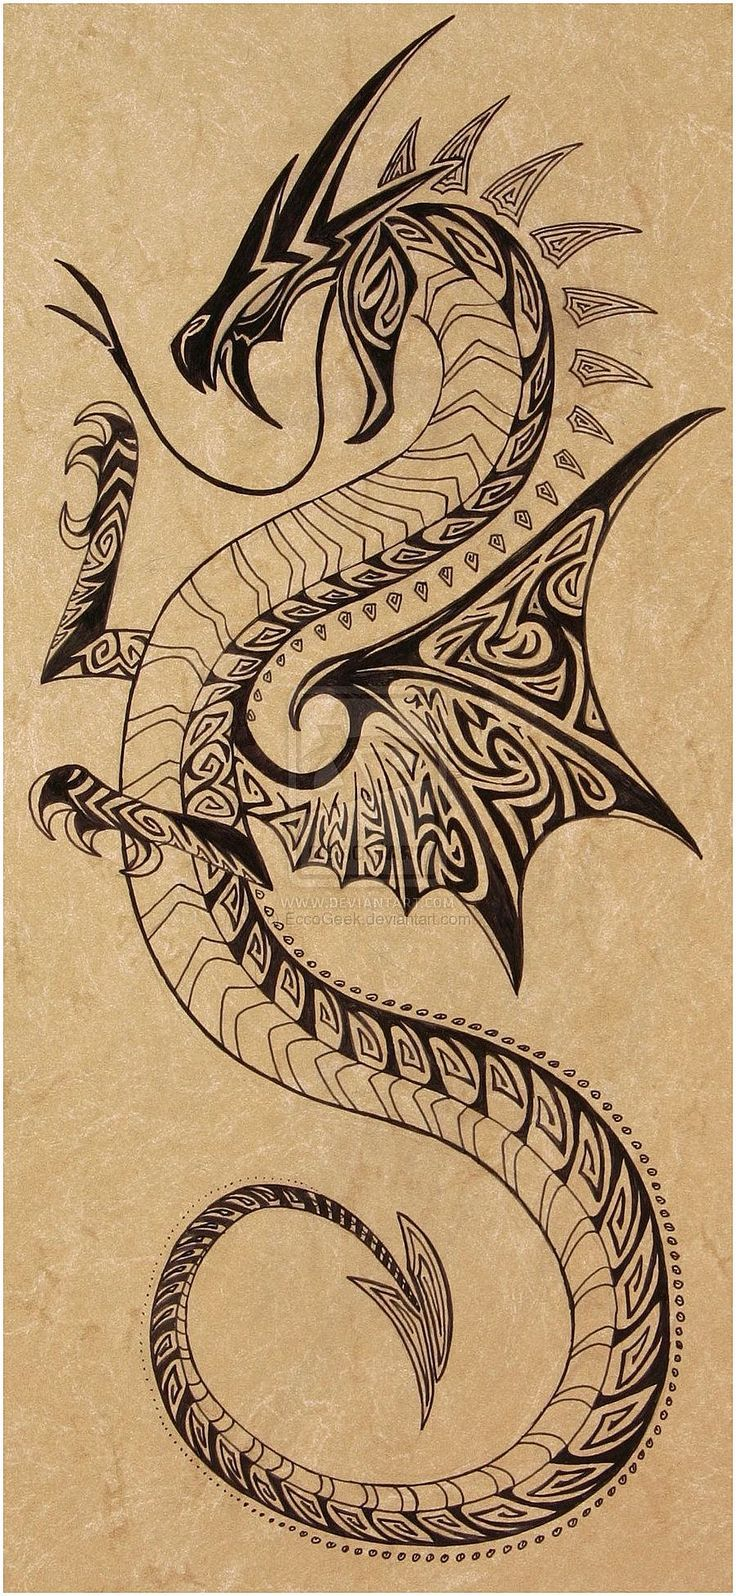 #TattooSymbolism #Tattoos Image result for norse sea serpent tattoo, click for m… #Tattoos